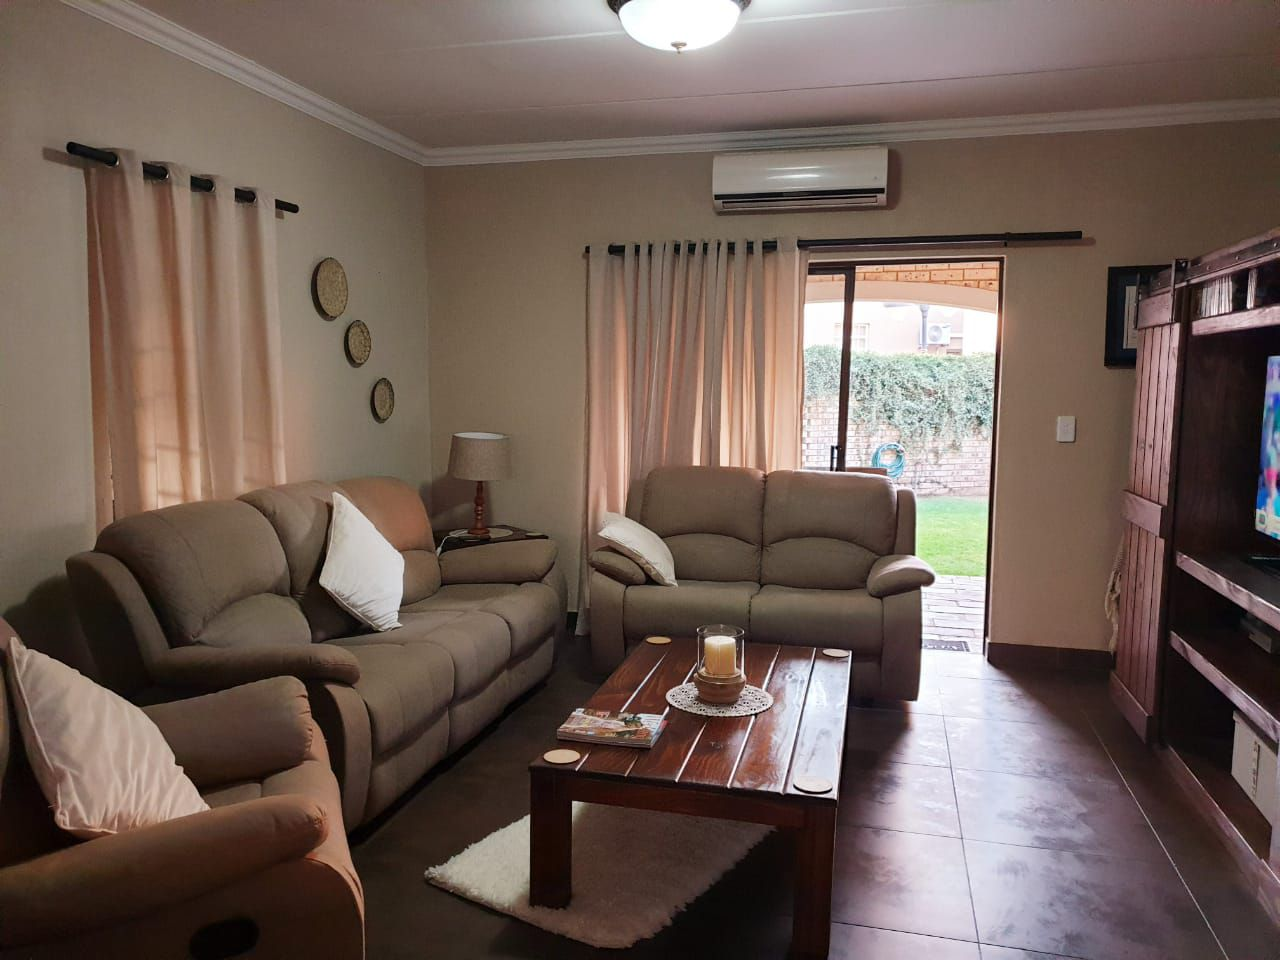 Apartment in Bailliepark - WhatsApp Image 2019-06-24 at 10.34.34.jpeg